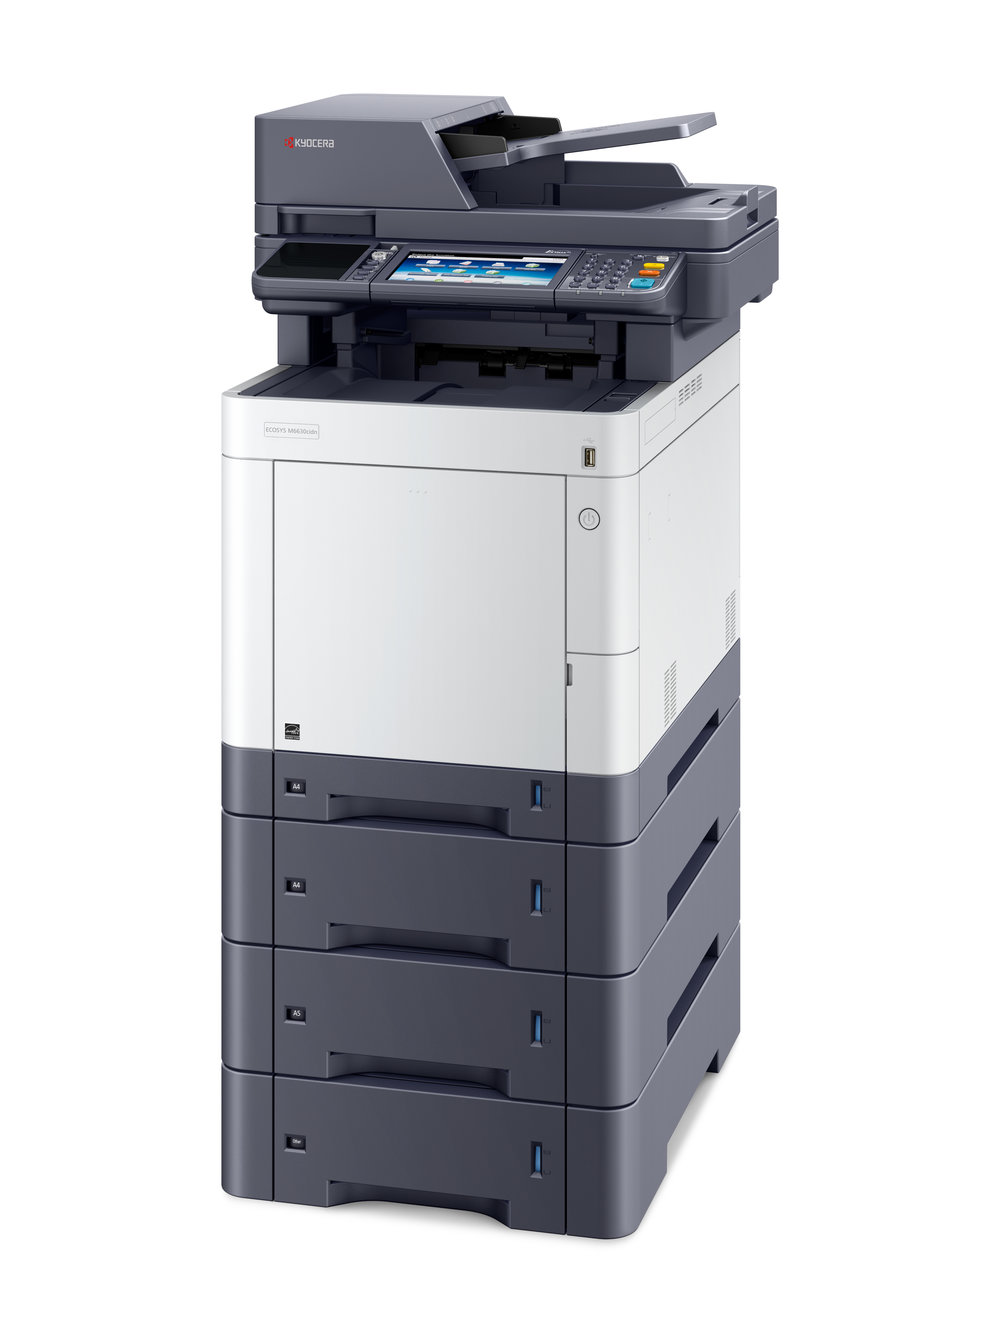 The Ecosys M6630cidn with x 3 optional 500 sheet cassettes